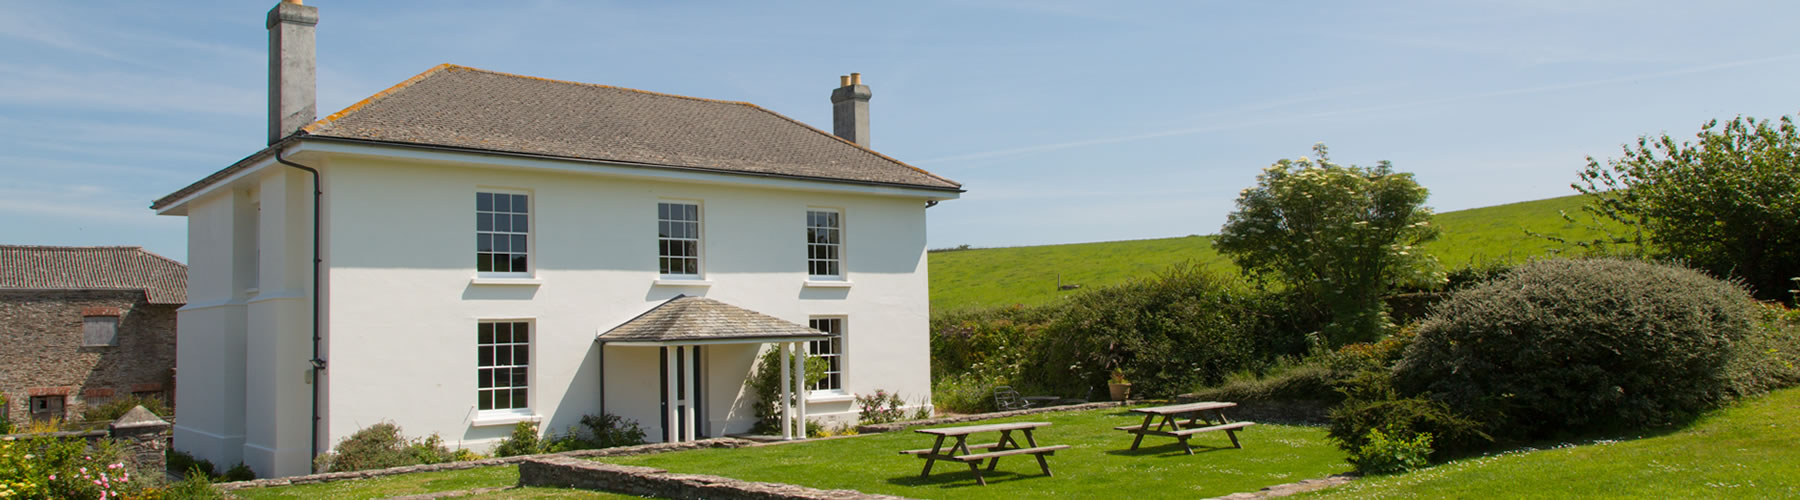 Lambside Holiday Cottages